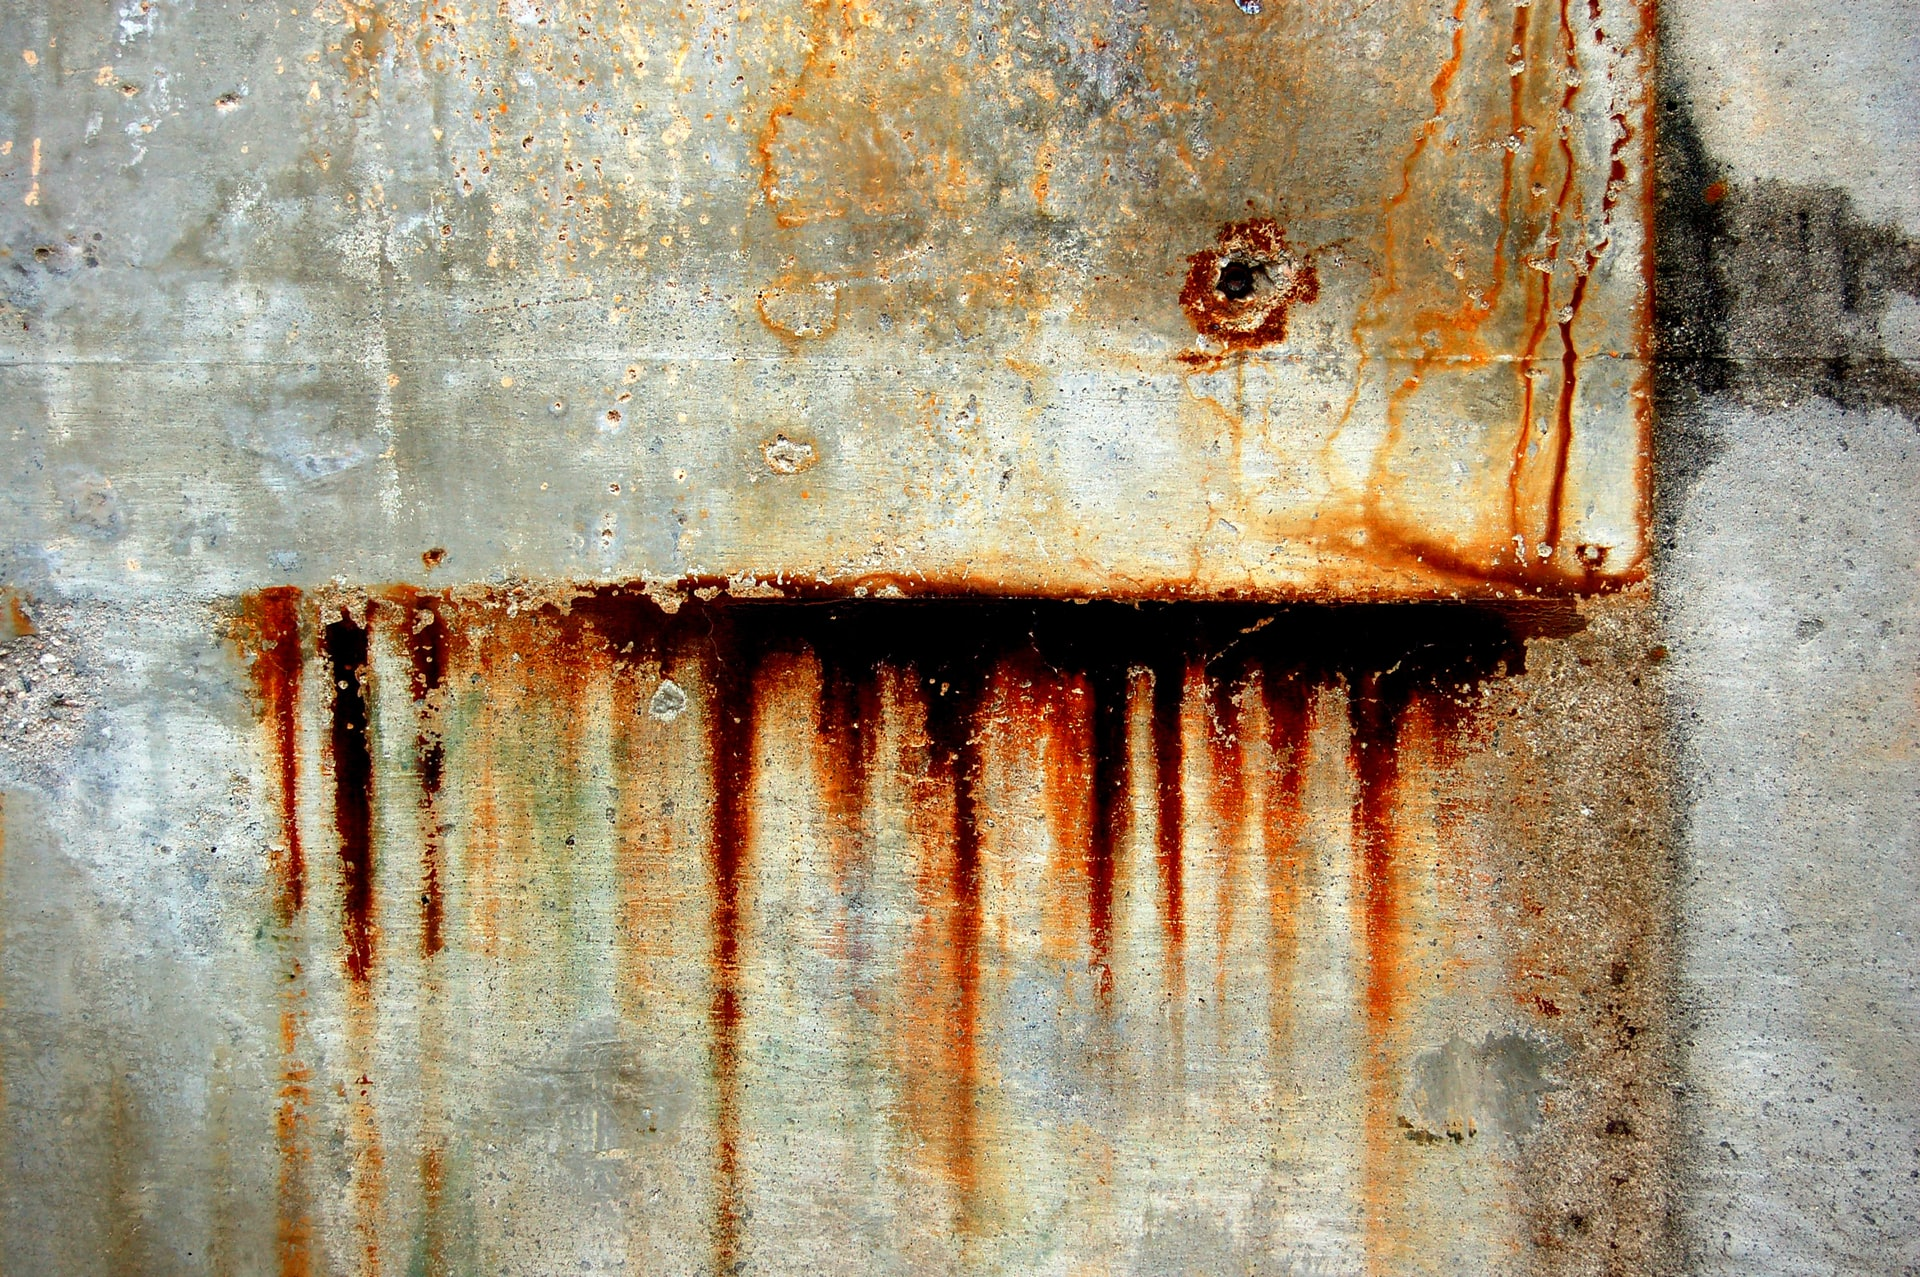 water rust stains